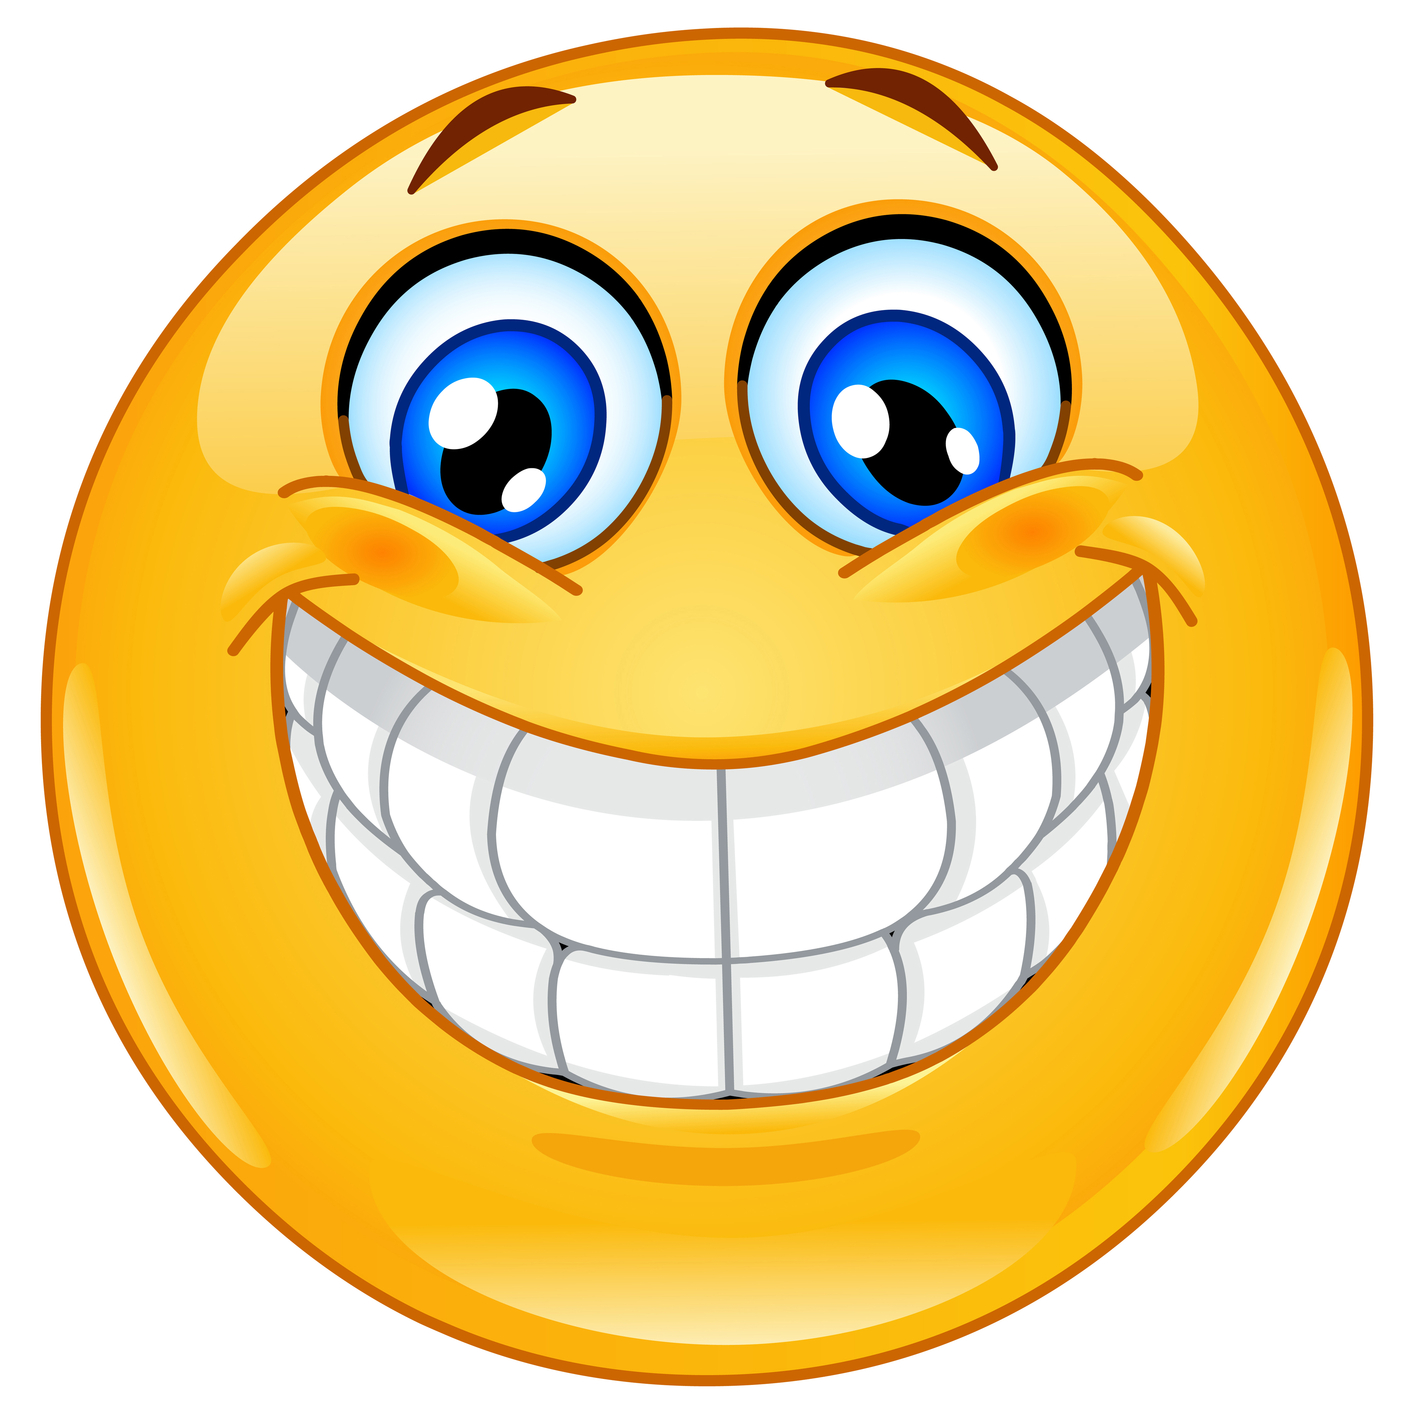 Clipart excited face clip freeuse download Emoji Excited Face Emoticon Super clipart free image clip freeuse download